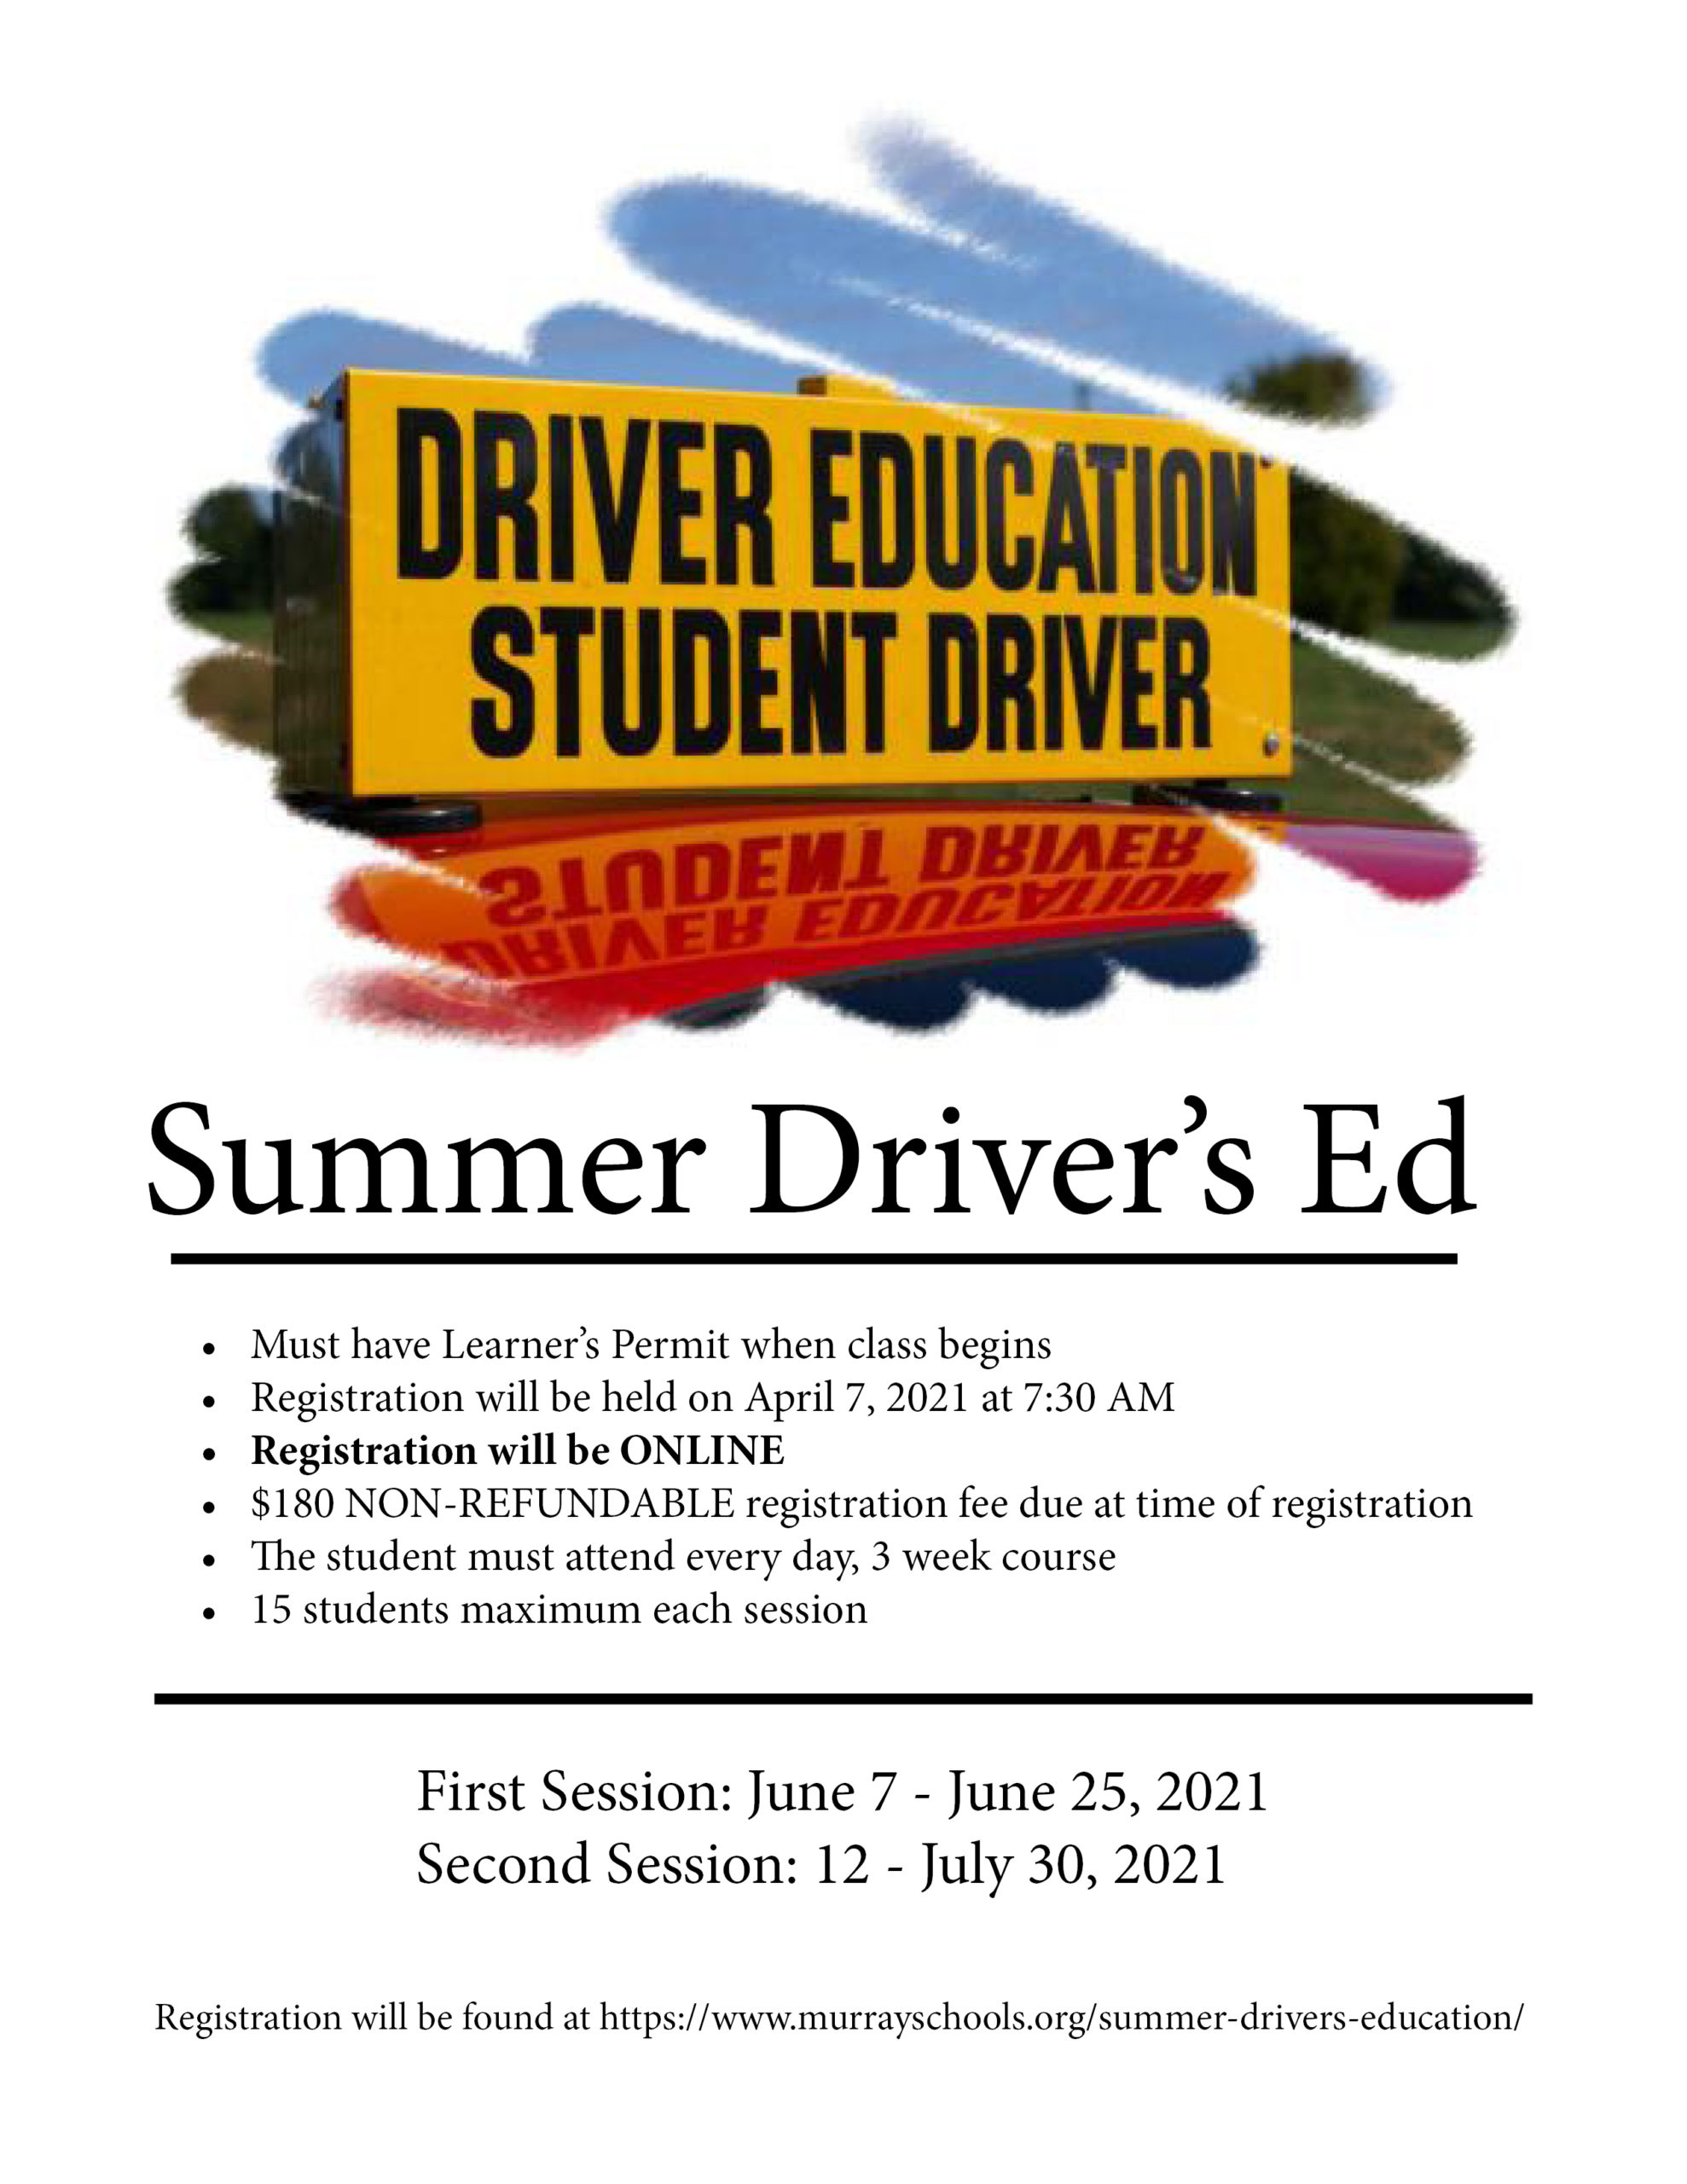 Summer Driver's Ed 2021